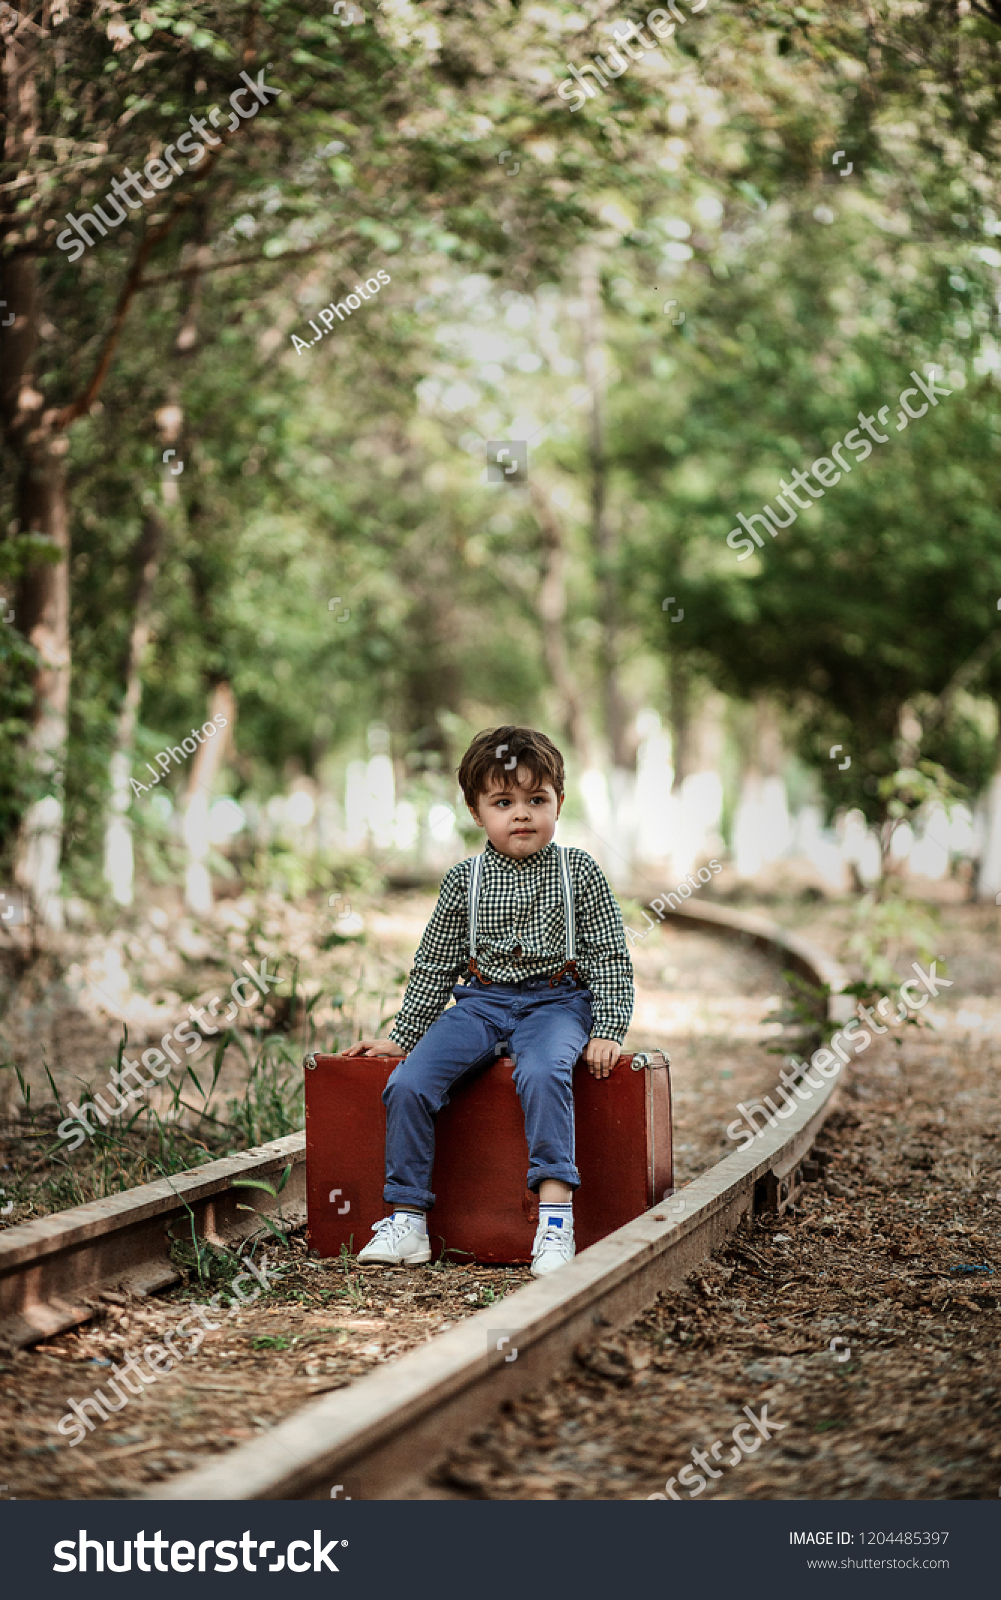 little cute boy in vintage clothes on a retro suitcase.